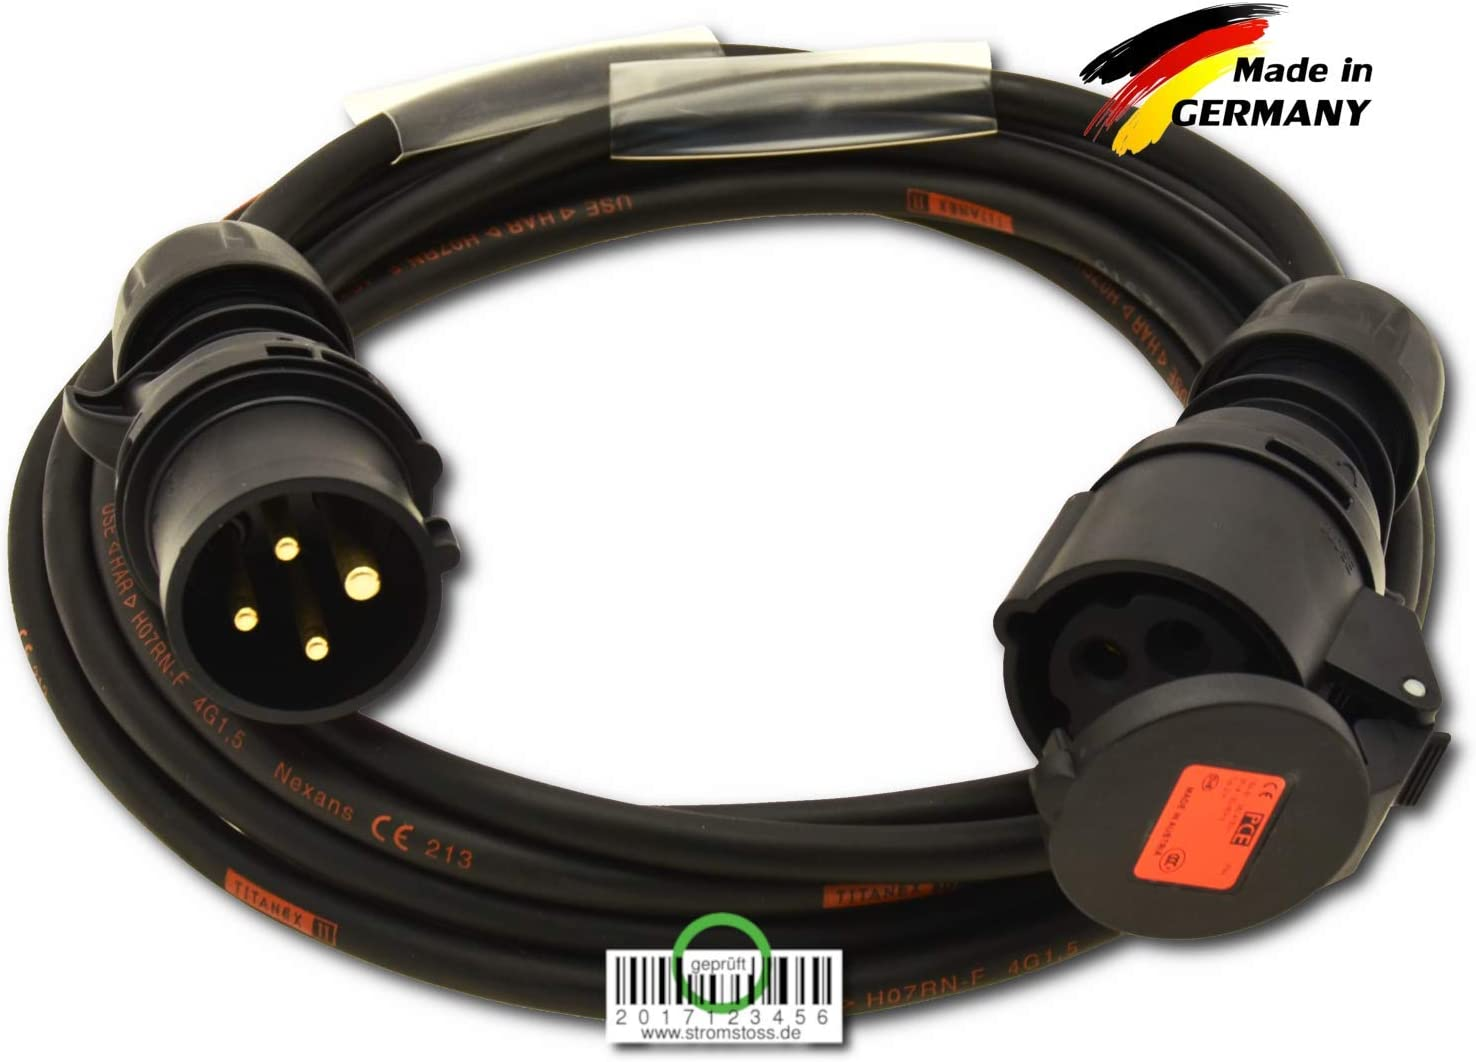 16 A, 4 polos, 400 V, 4 polos, 4 pines, 4 mm/² Cable de motor color negro